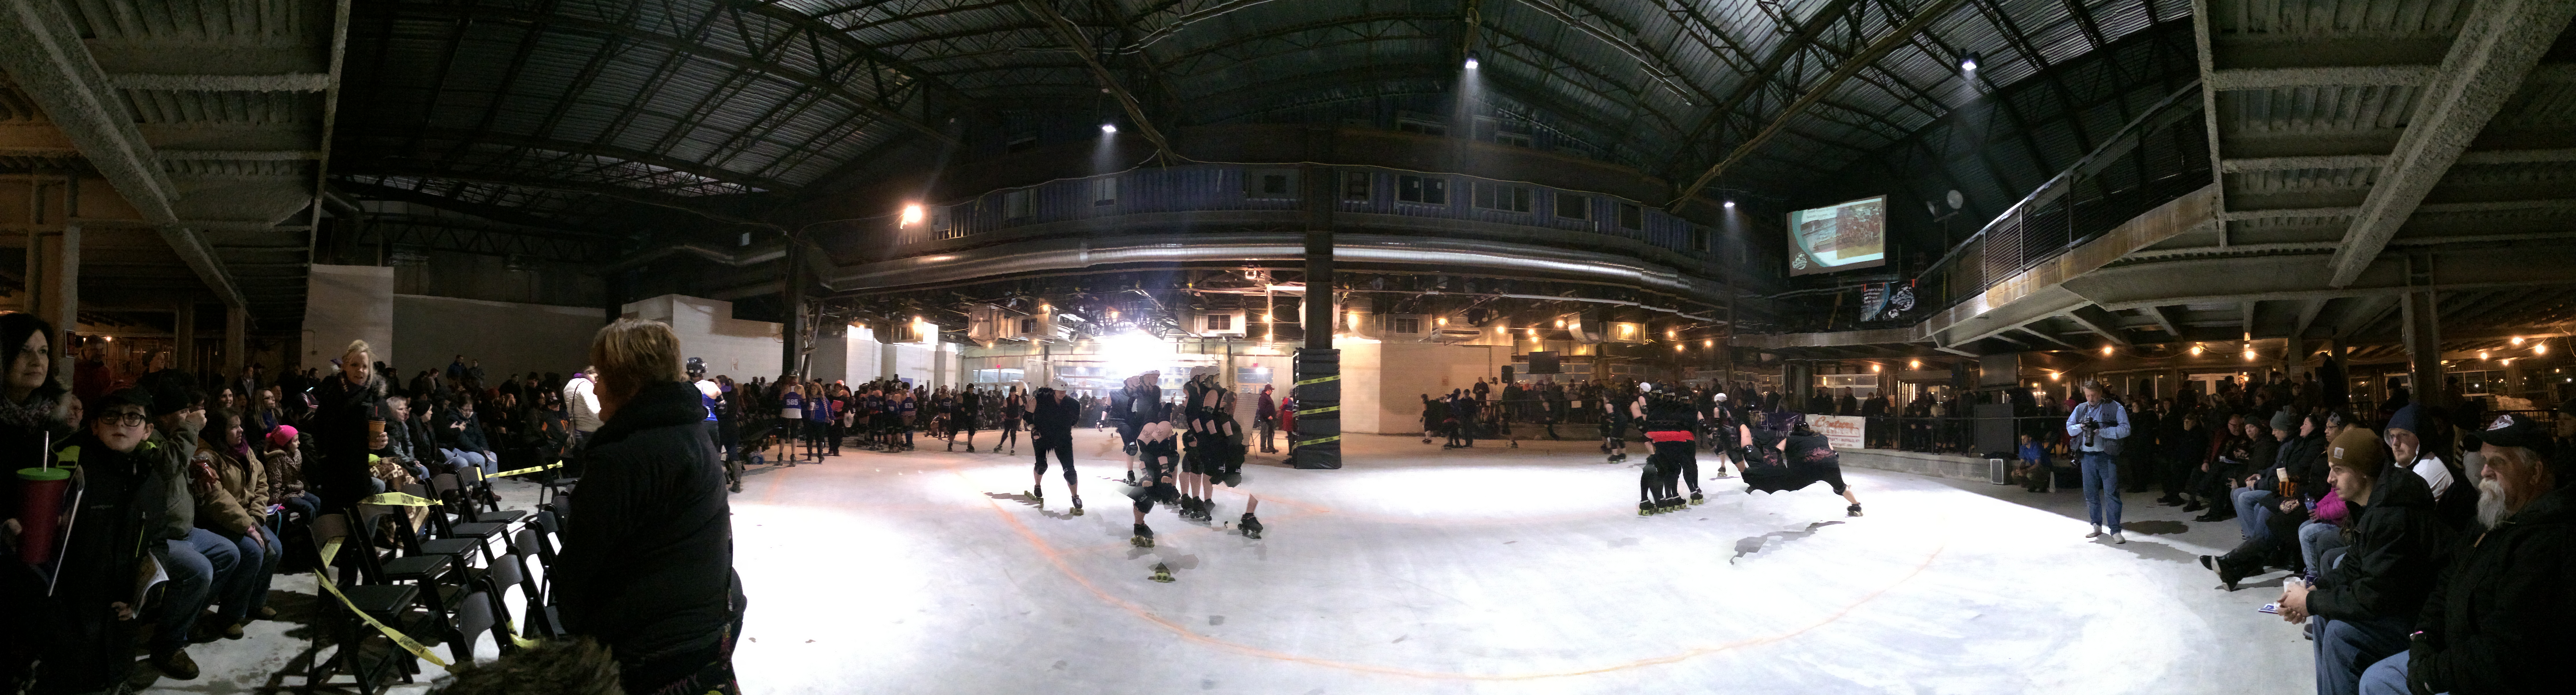 Roller skating rink lafayette in - The Arena